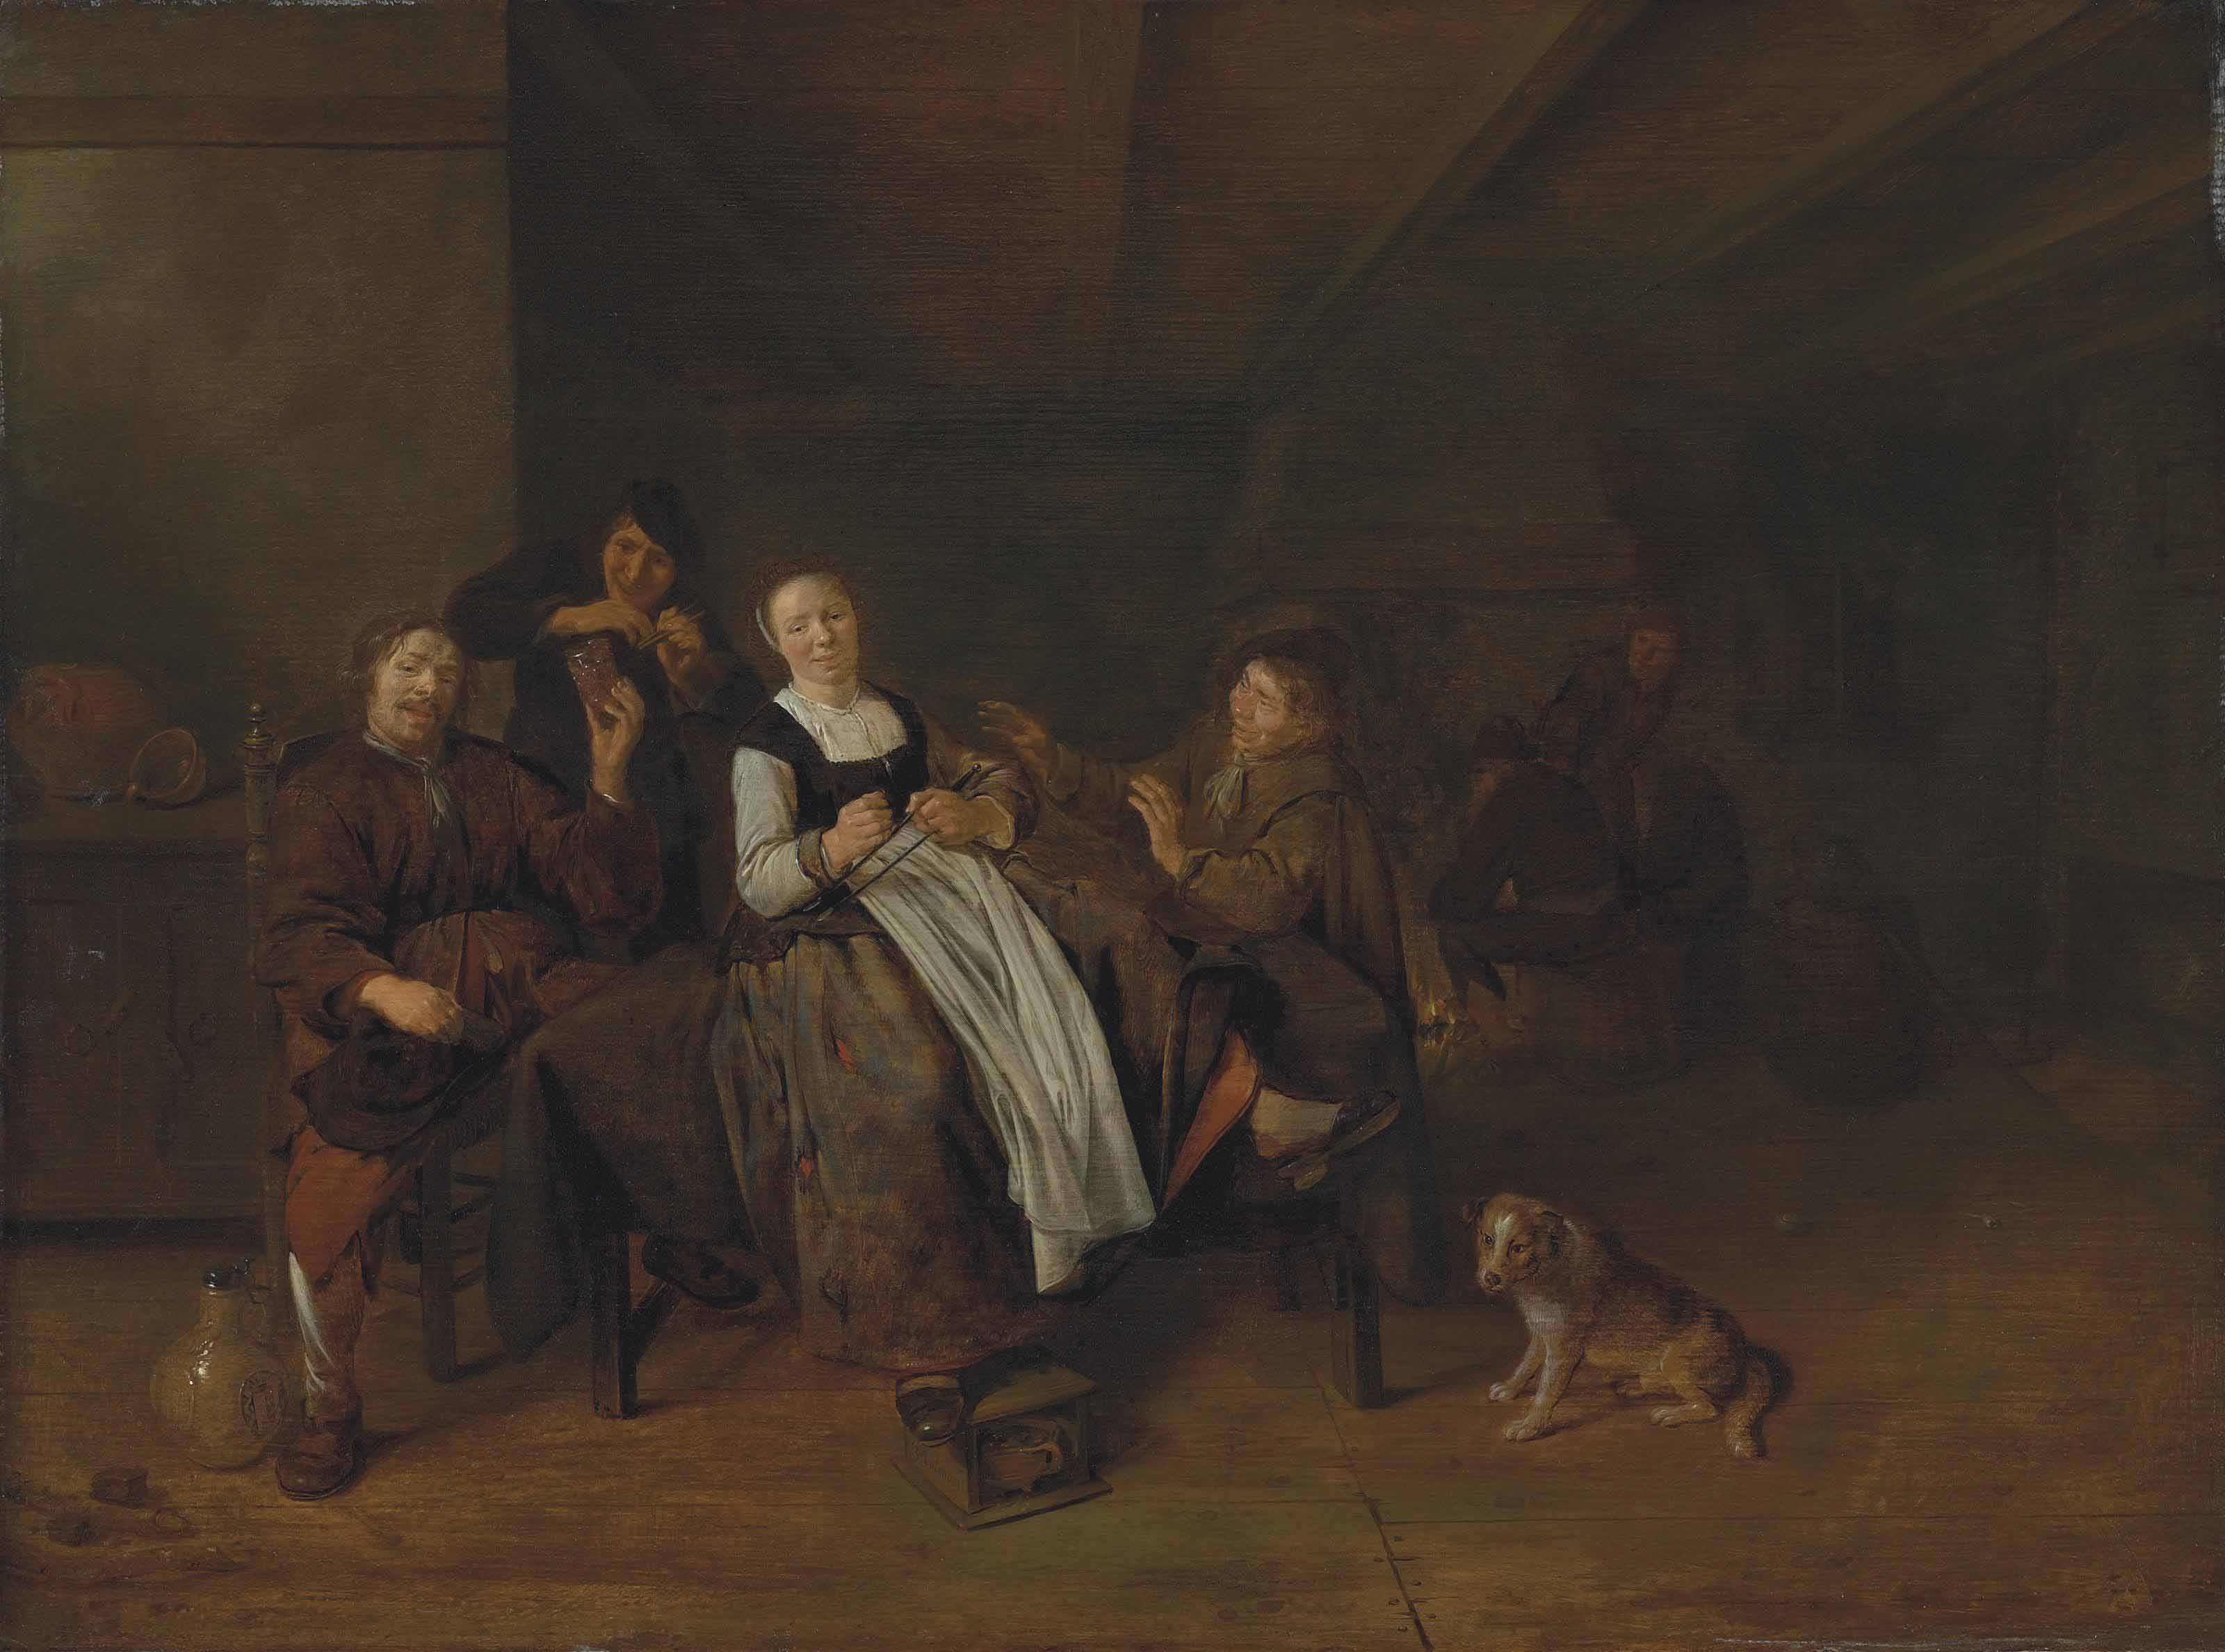 A merry group of figures sitting in a barn with a dog, others gathering around a fireplace